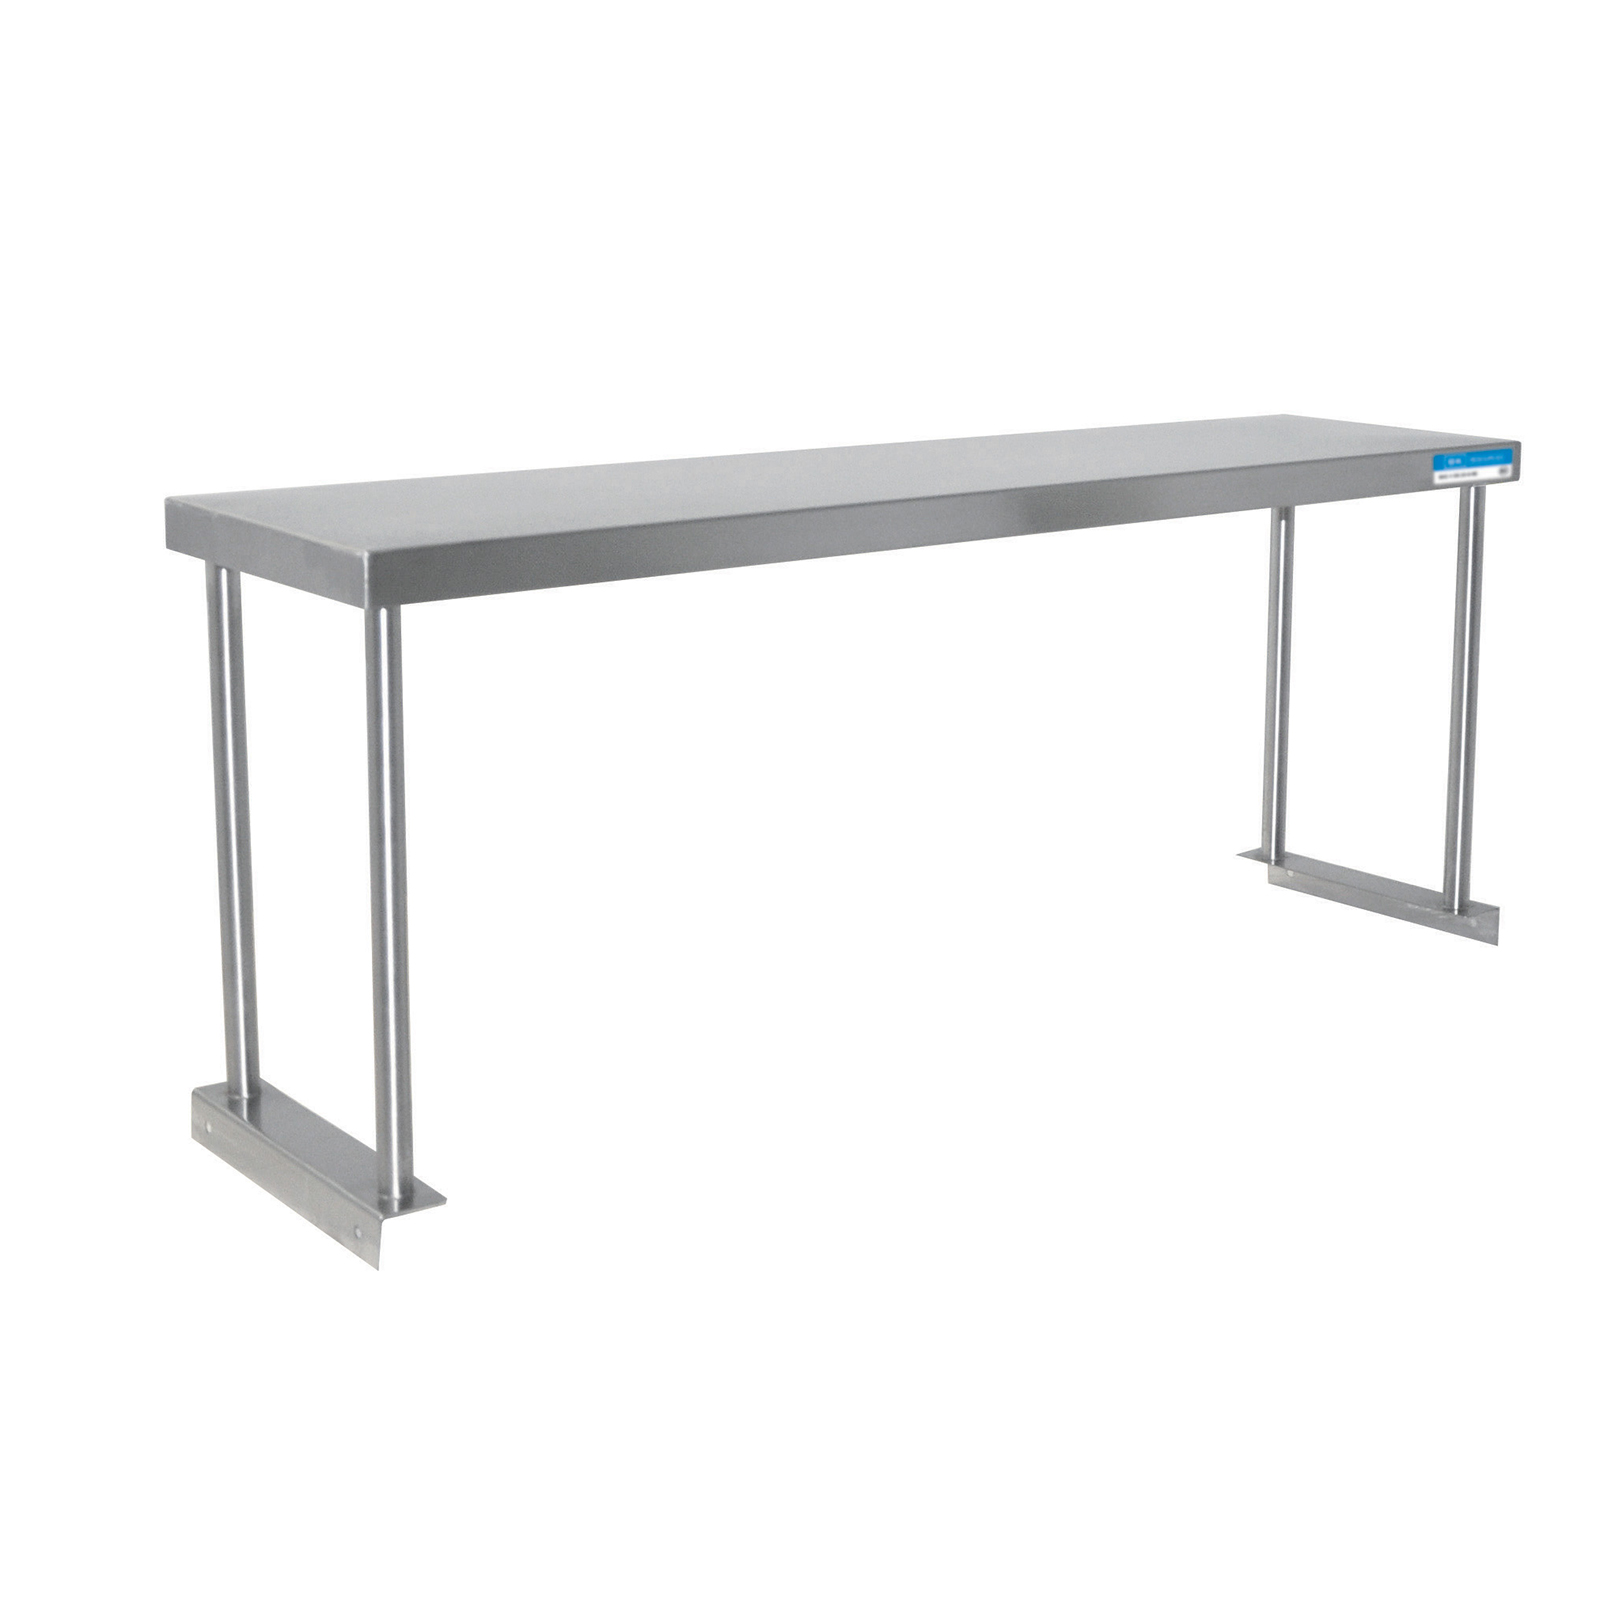 BK Resources BK-OSS-1248 overshelf, table-mounted